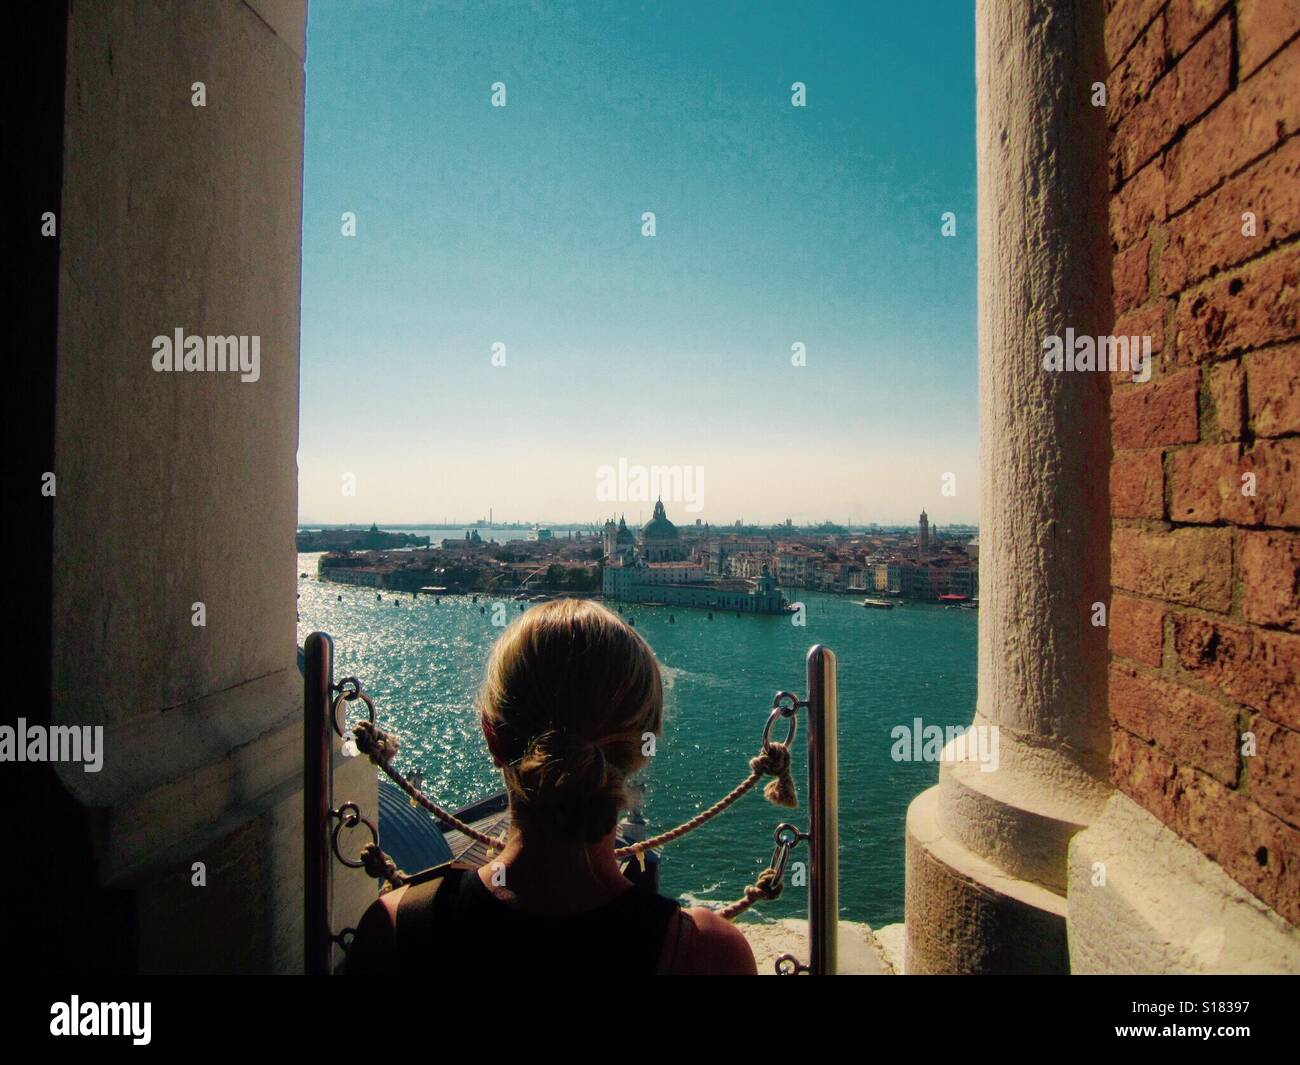 Woman looking out over Venice towards the Grand Canal Stock Photo